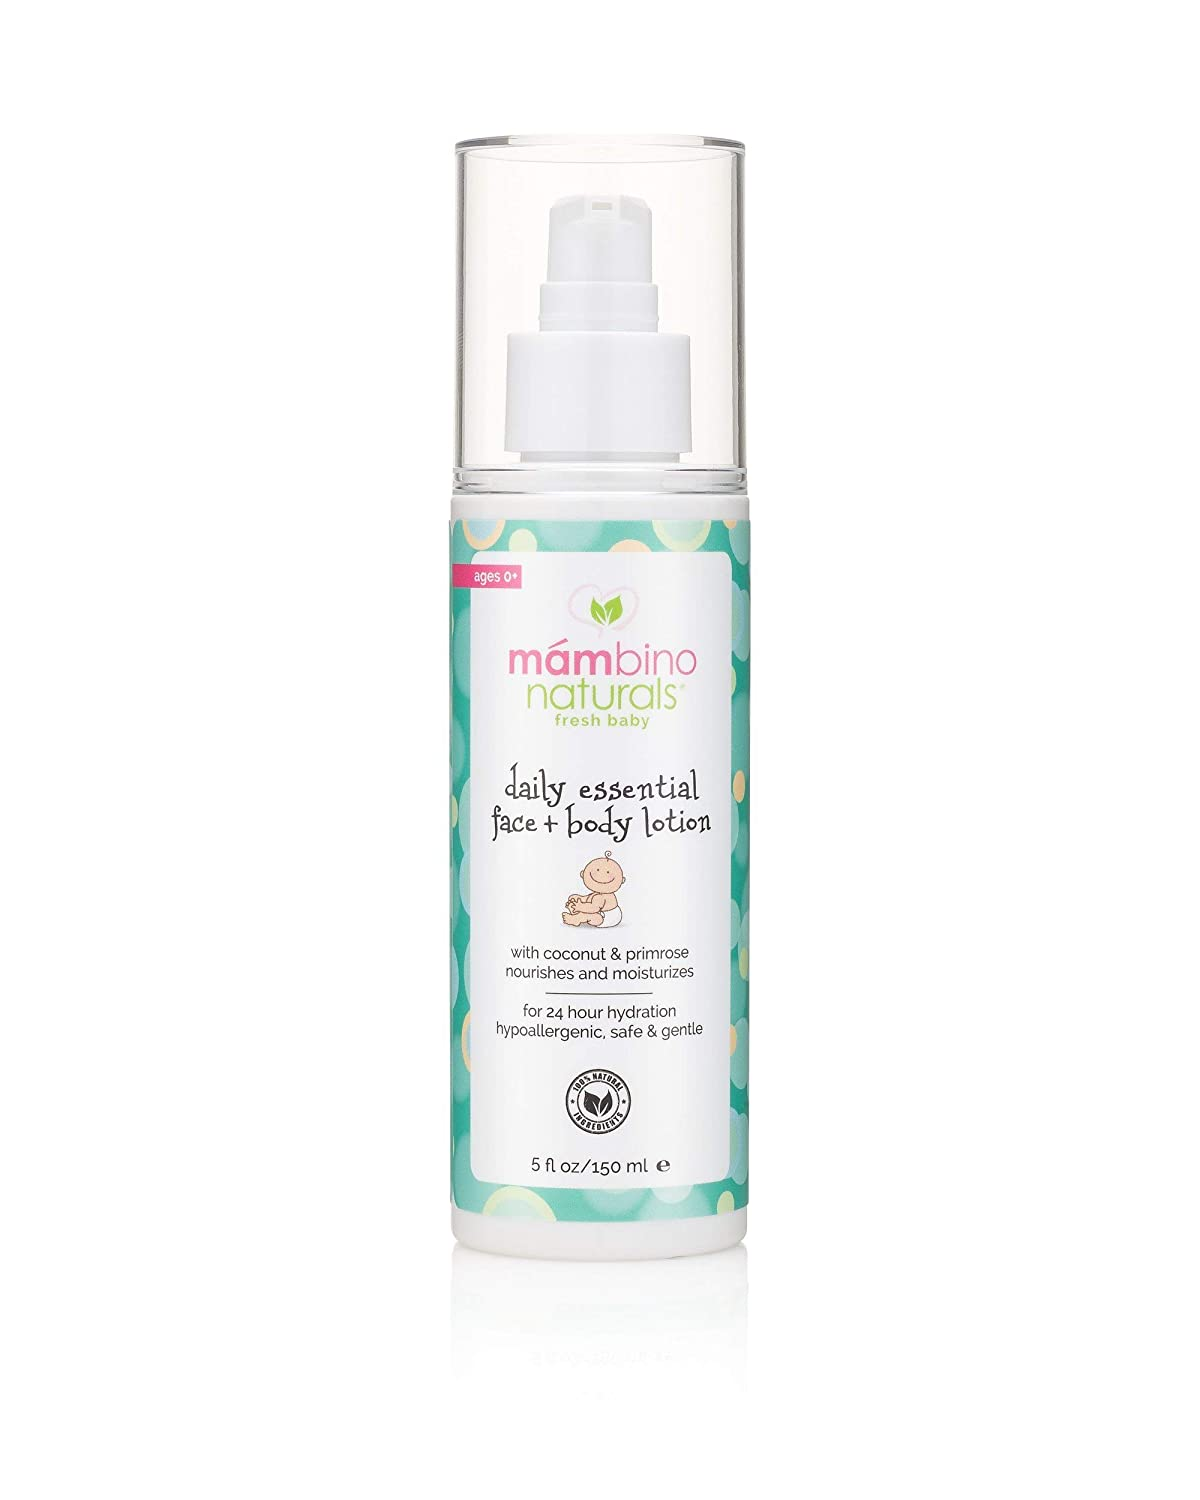 Mambino Organics Daily Essential Face And Body Lotion, Coconut + Primrose, 5 Fluid Ounces